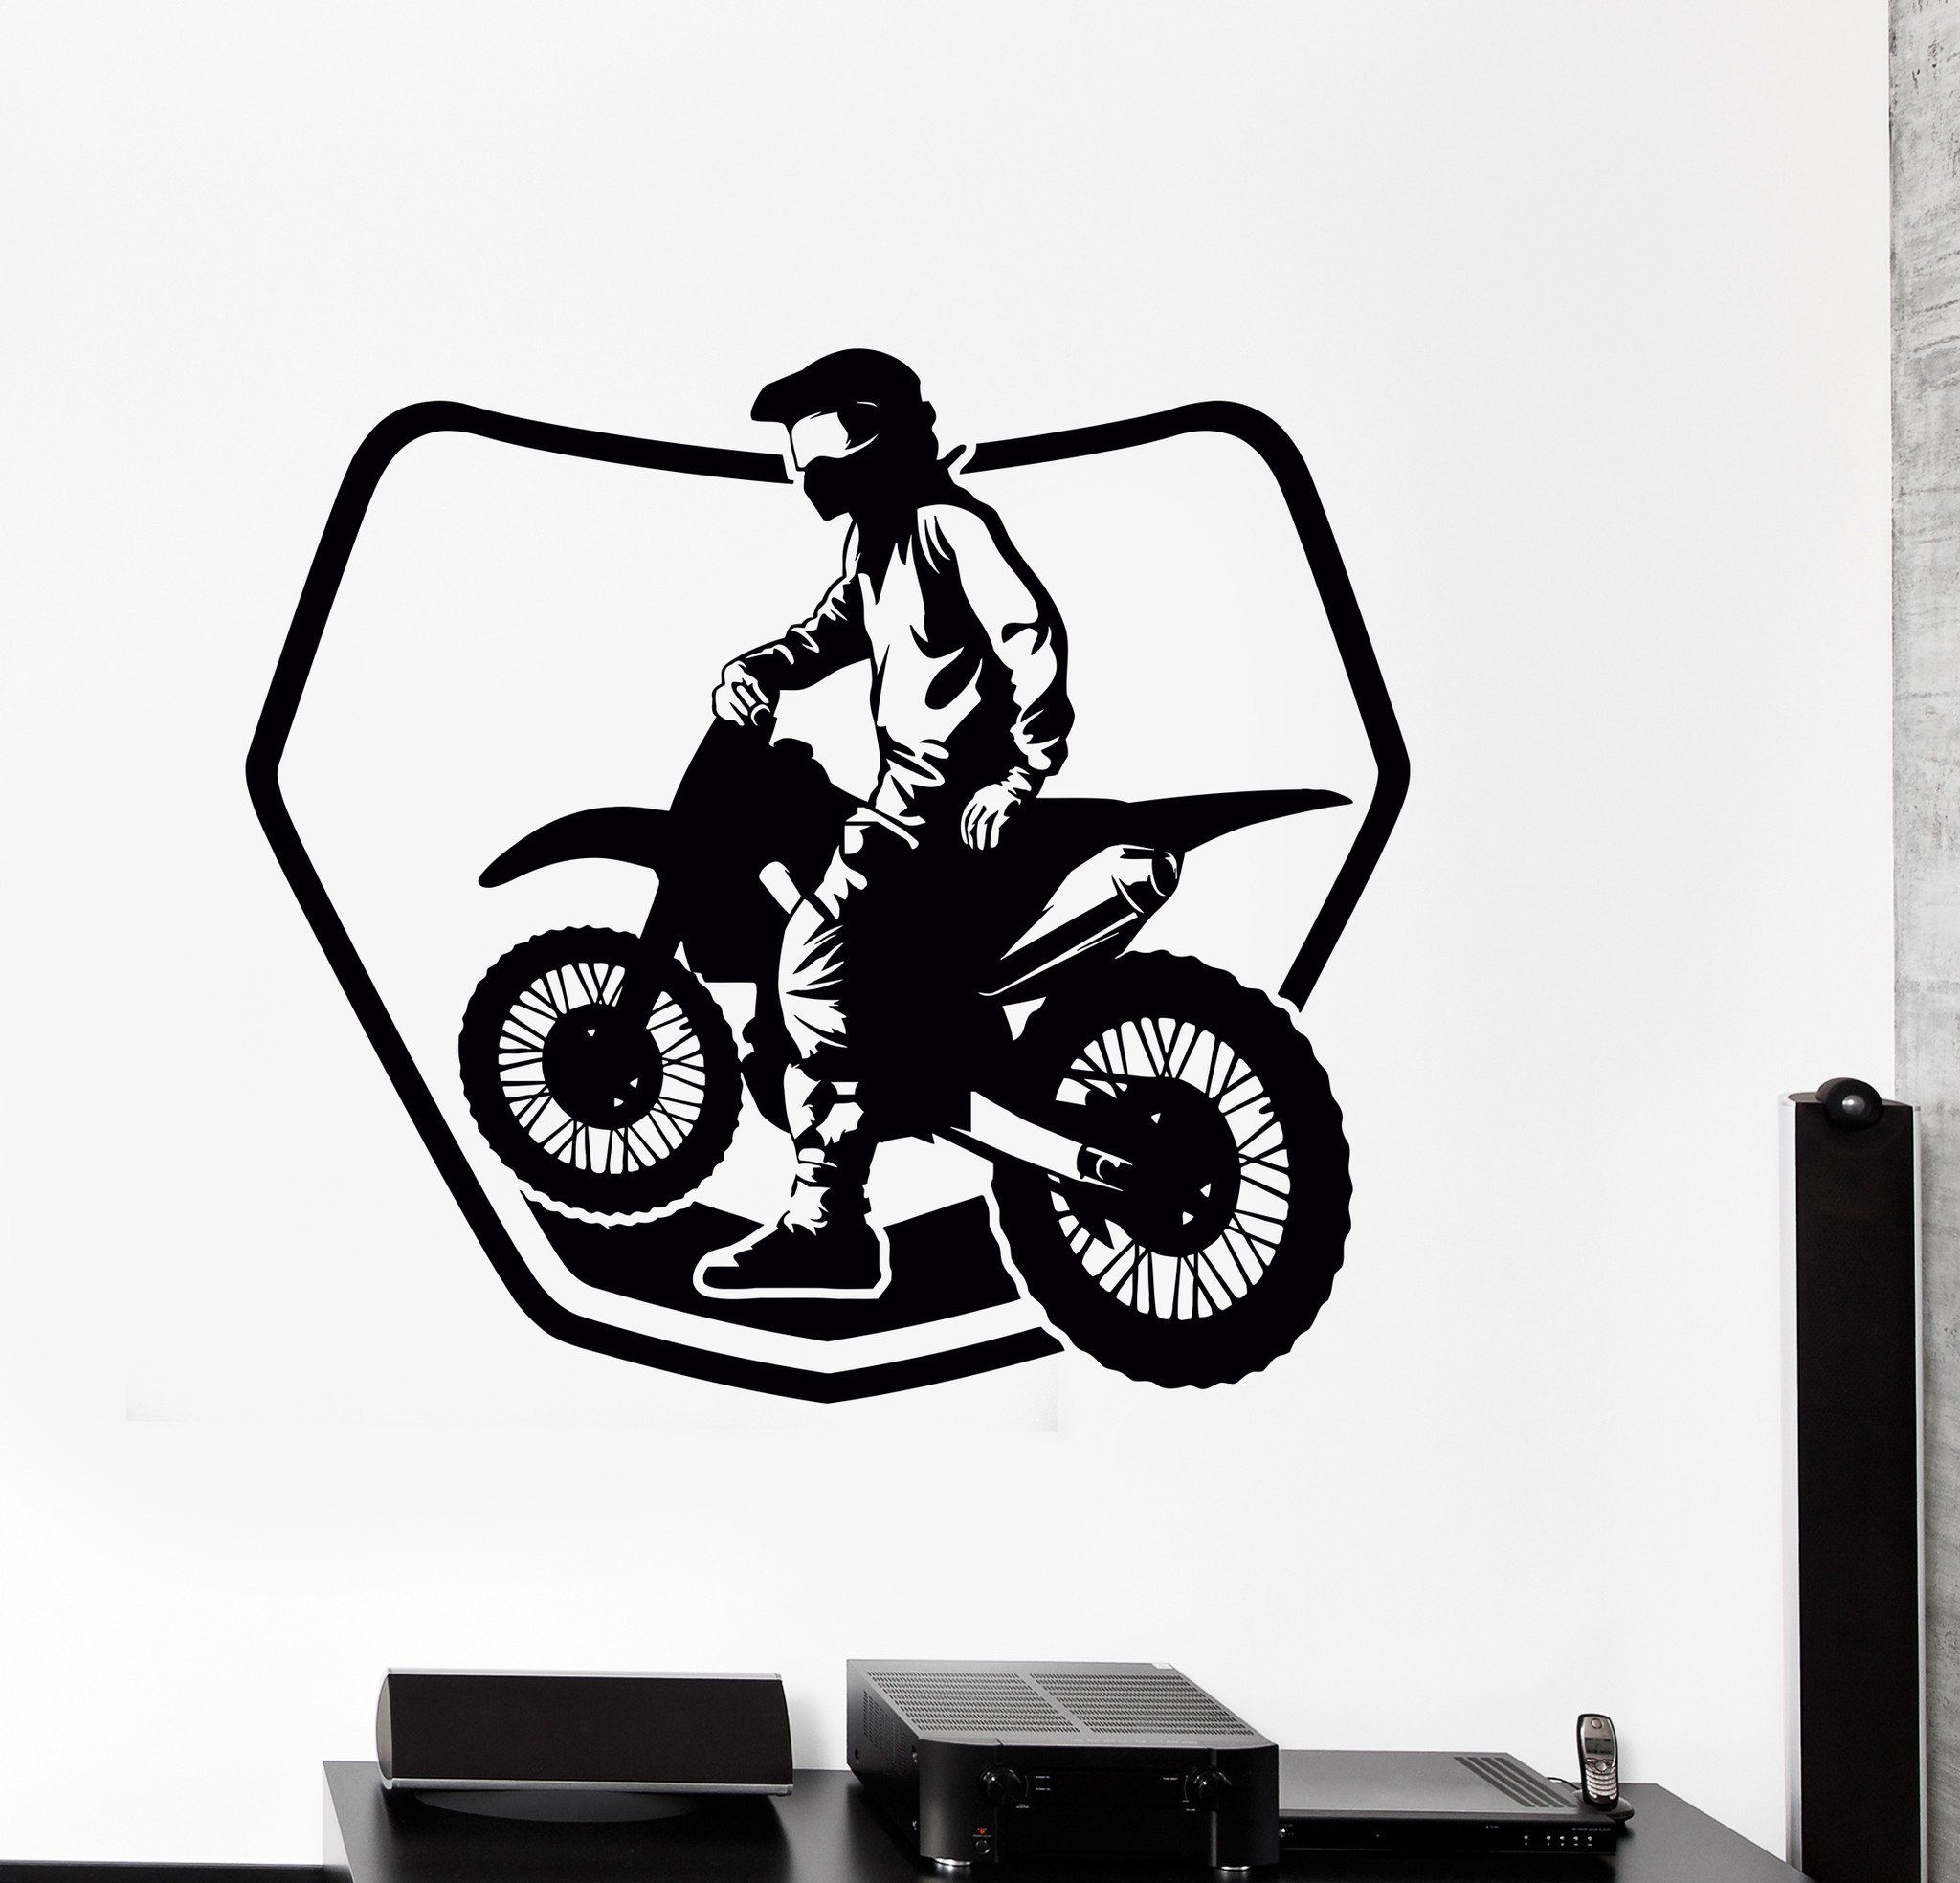 Wall sticker bike biker drive speed race track motorcycle vinyl decal unique gift ed529